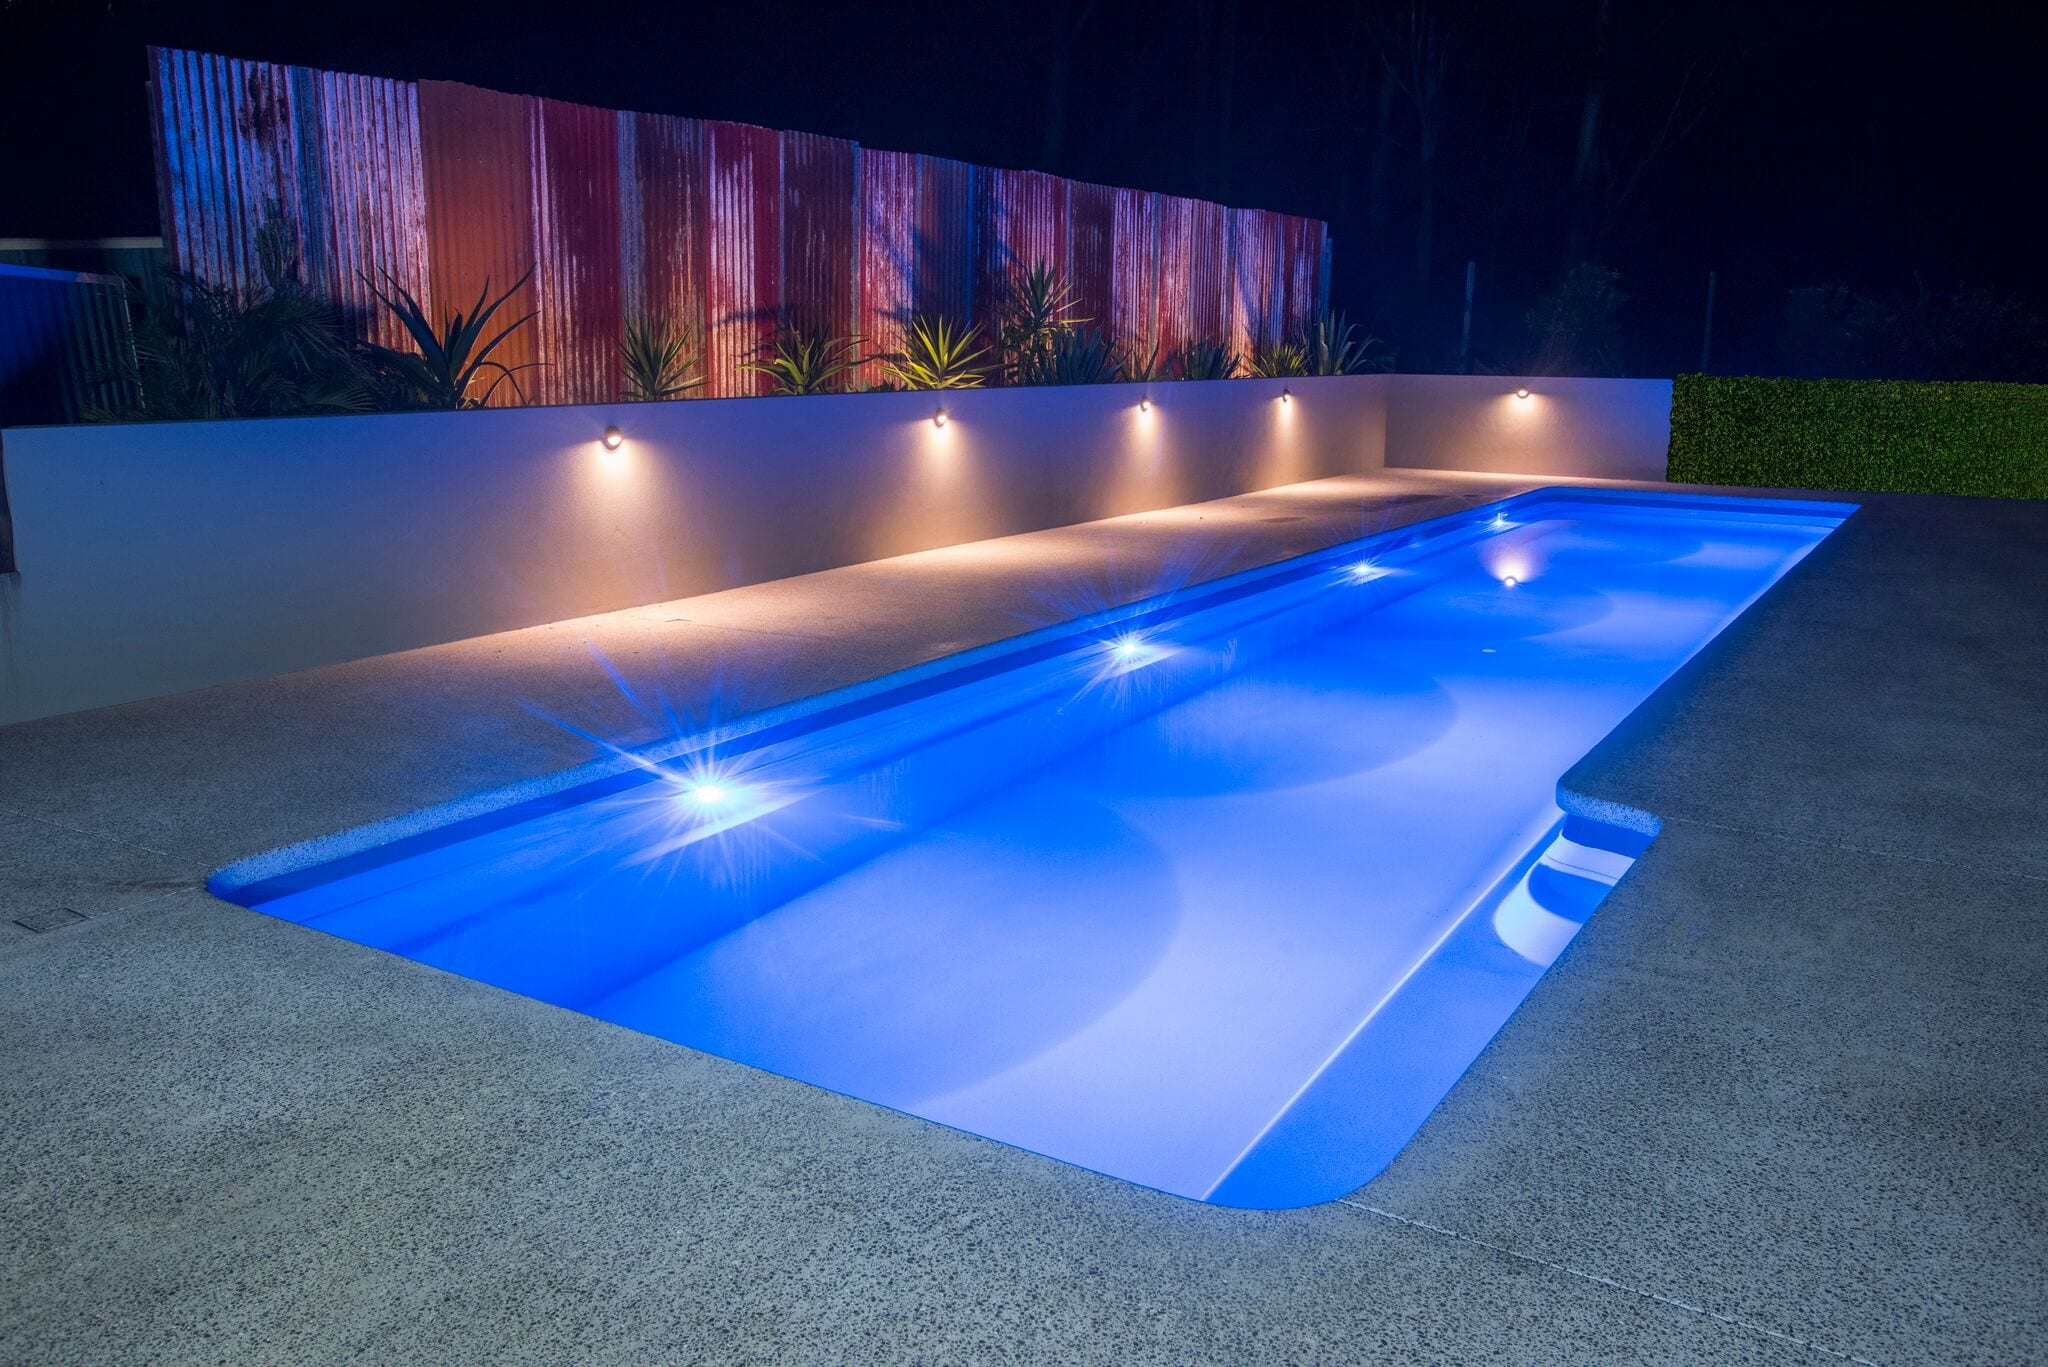 Lap pool design by Port Pools by Design